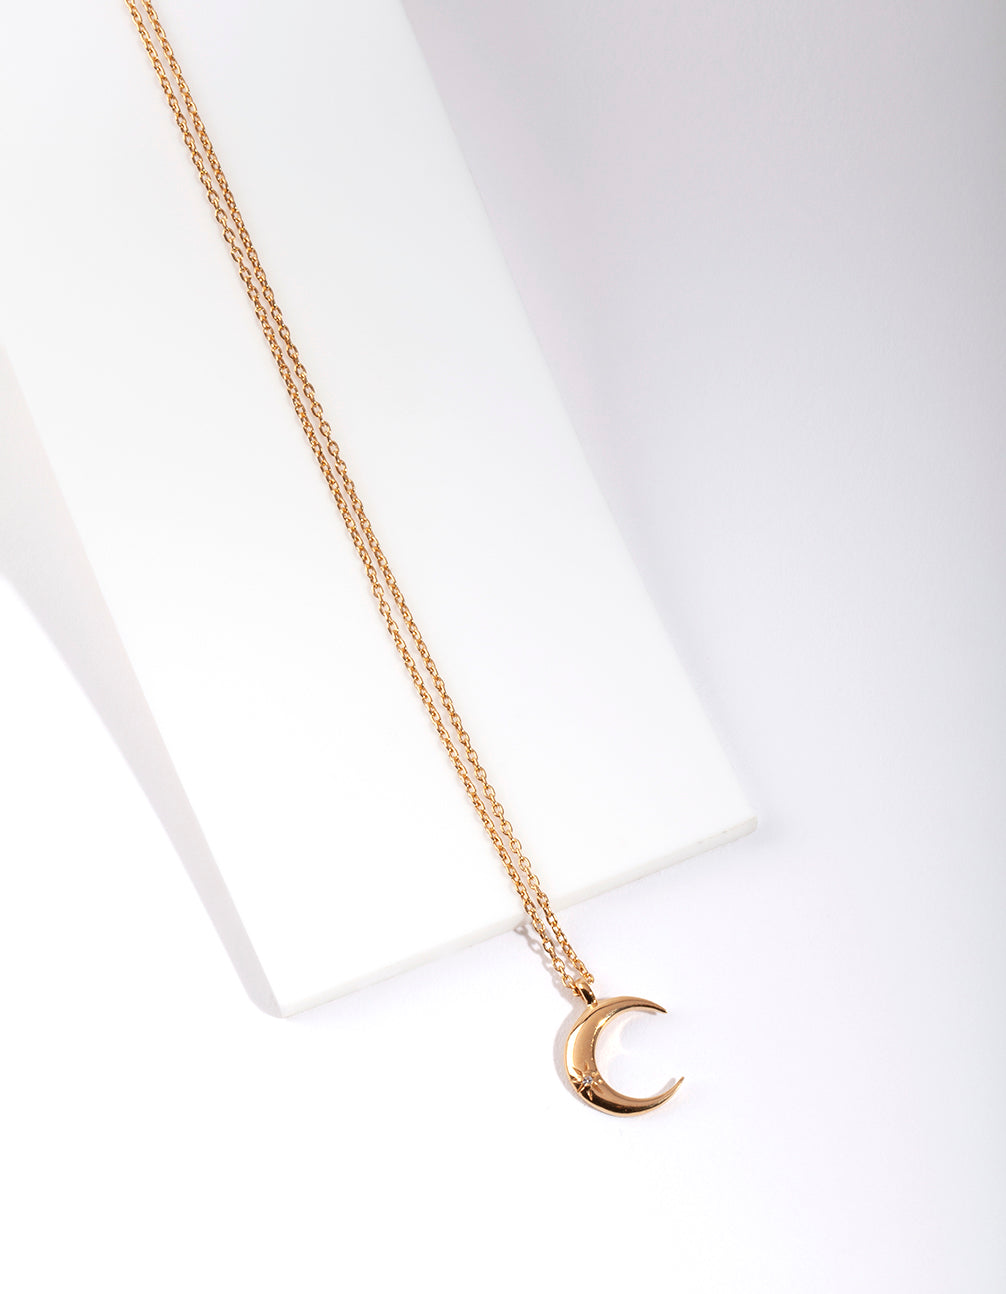 Gold Plated Sterling Silver Crescent Moon Necklace